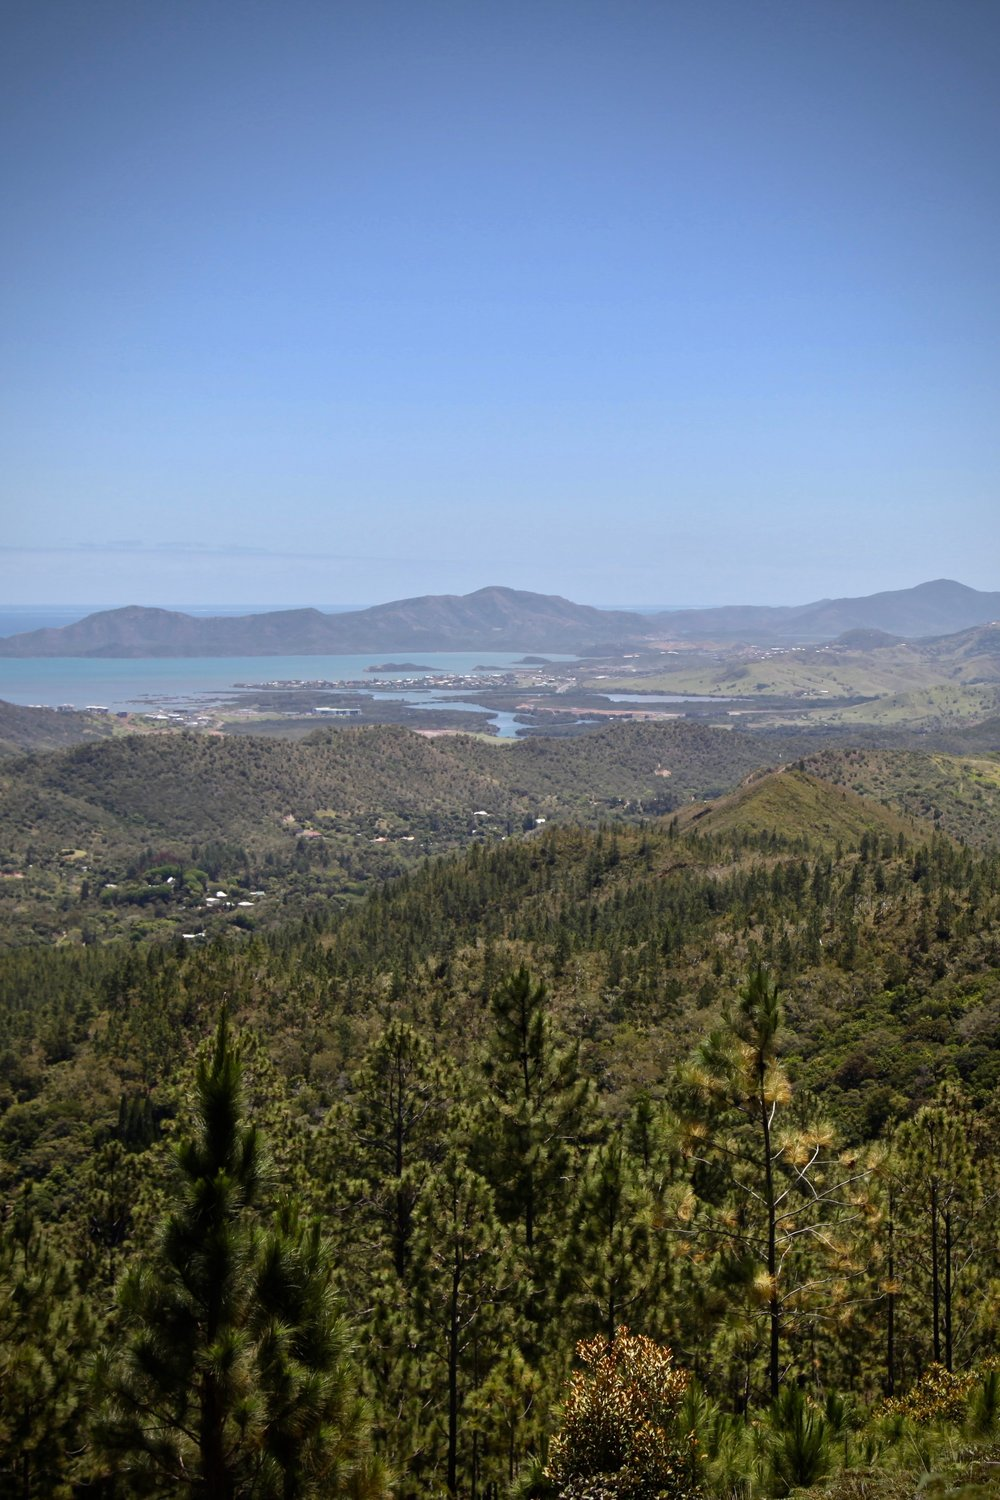 A view over Nouméa in New Caledonia.